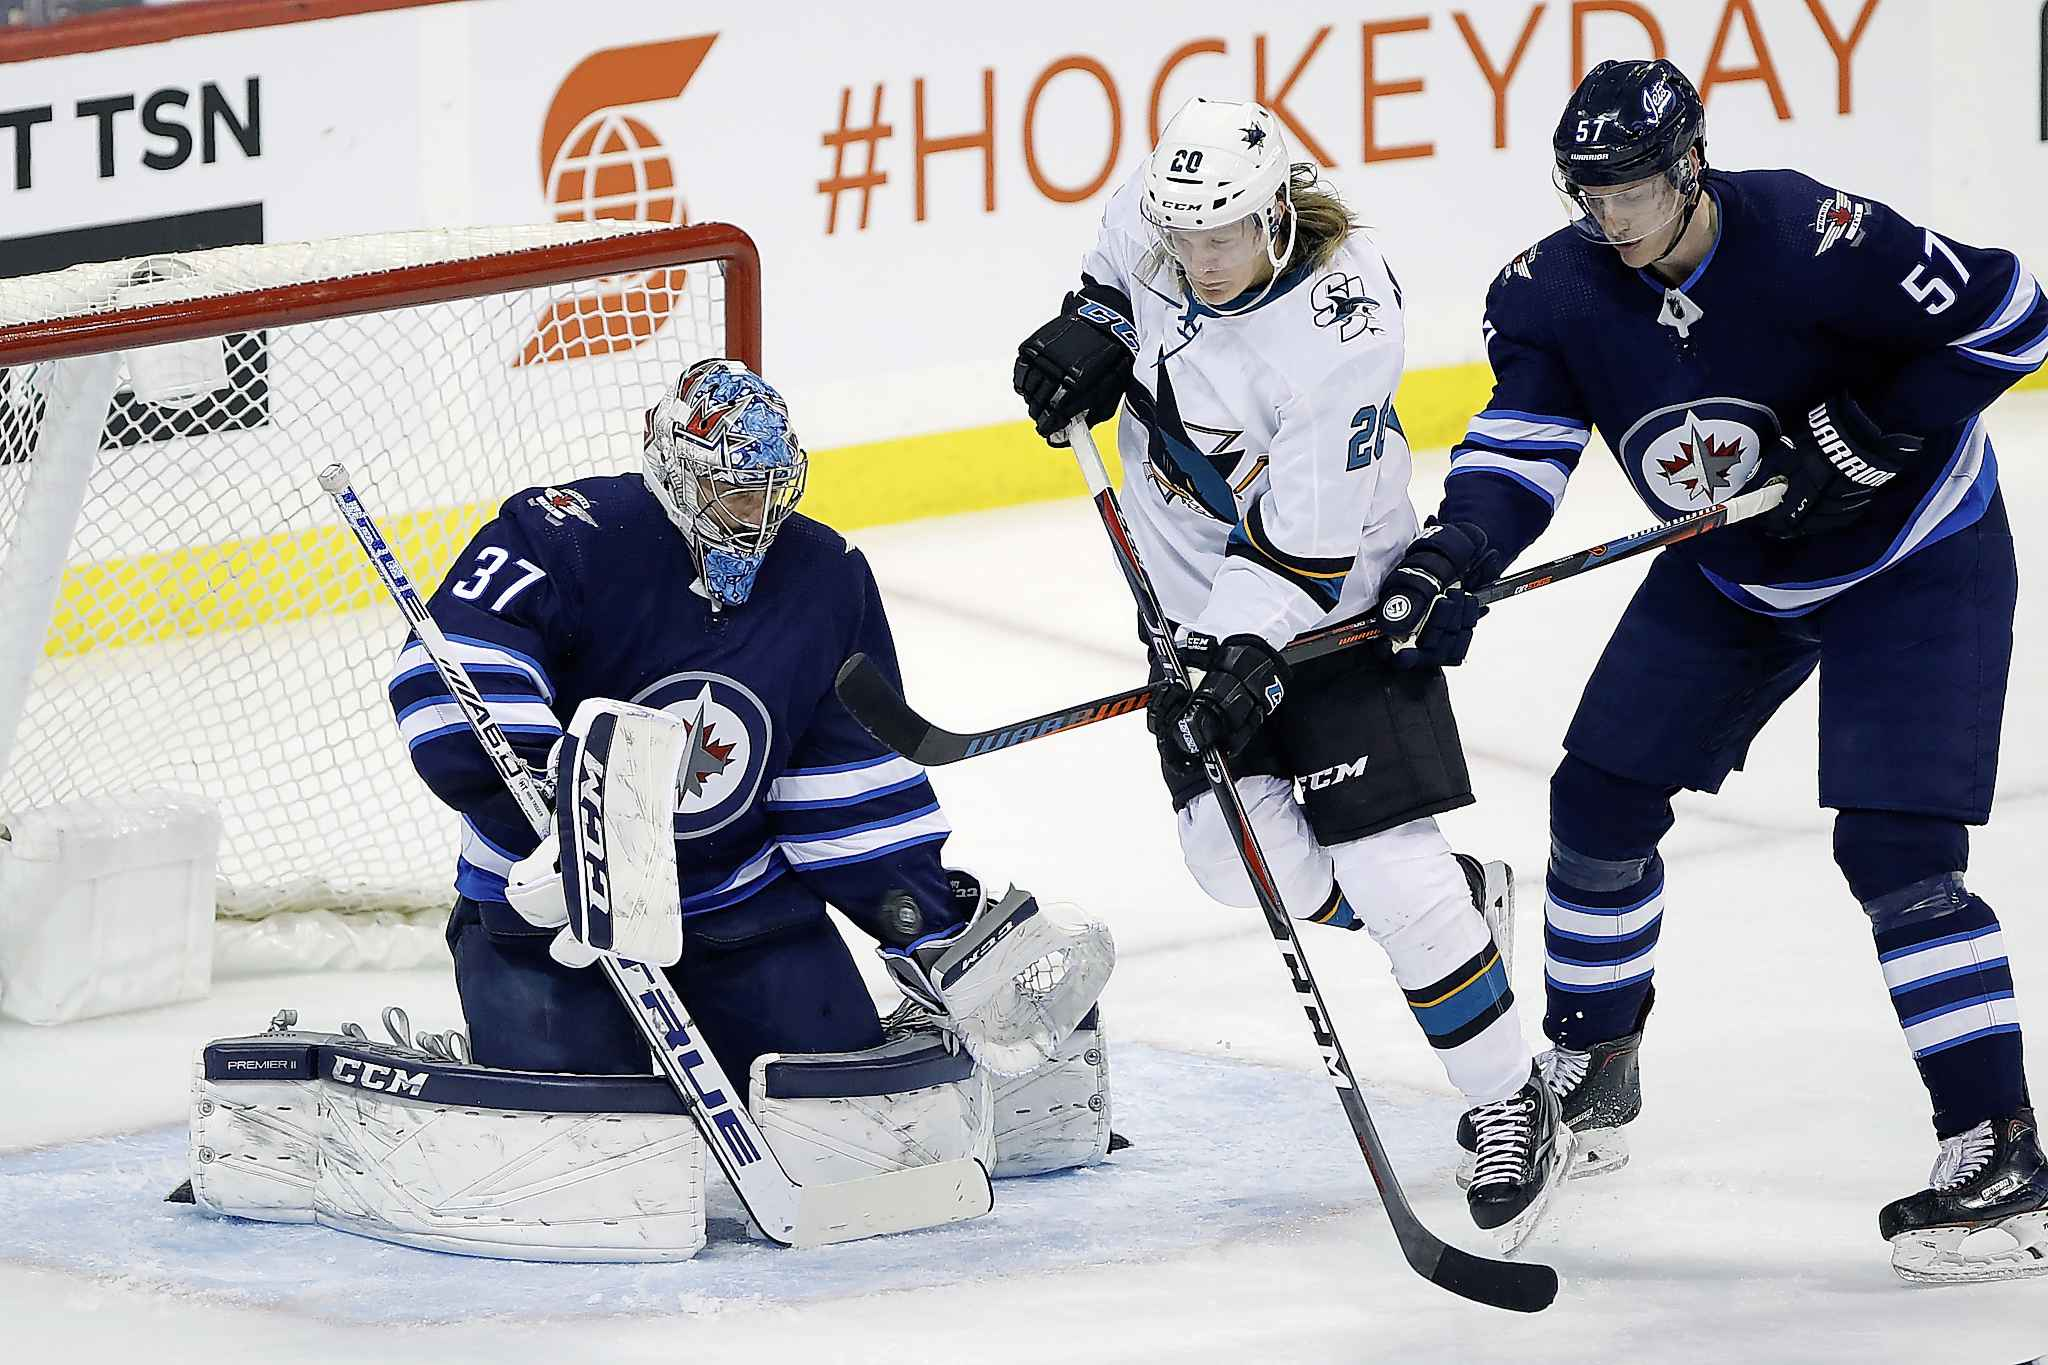 San Jose Sharks' Marcus Sorensen attempts to deflect the puck past Winnipeg Jets goaltender Connor Hellebuyck as Tyler Myers defends during the first period.